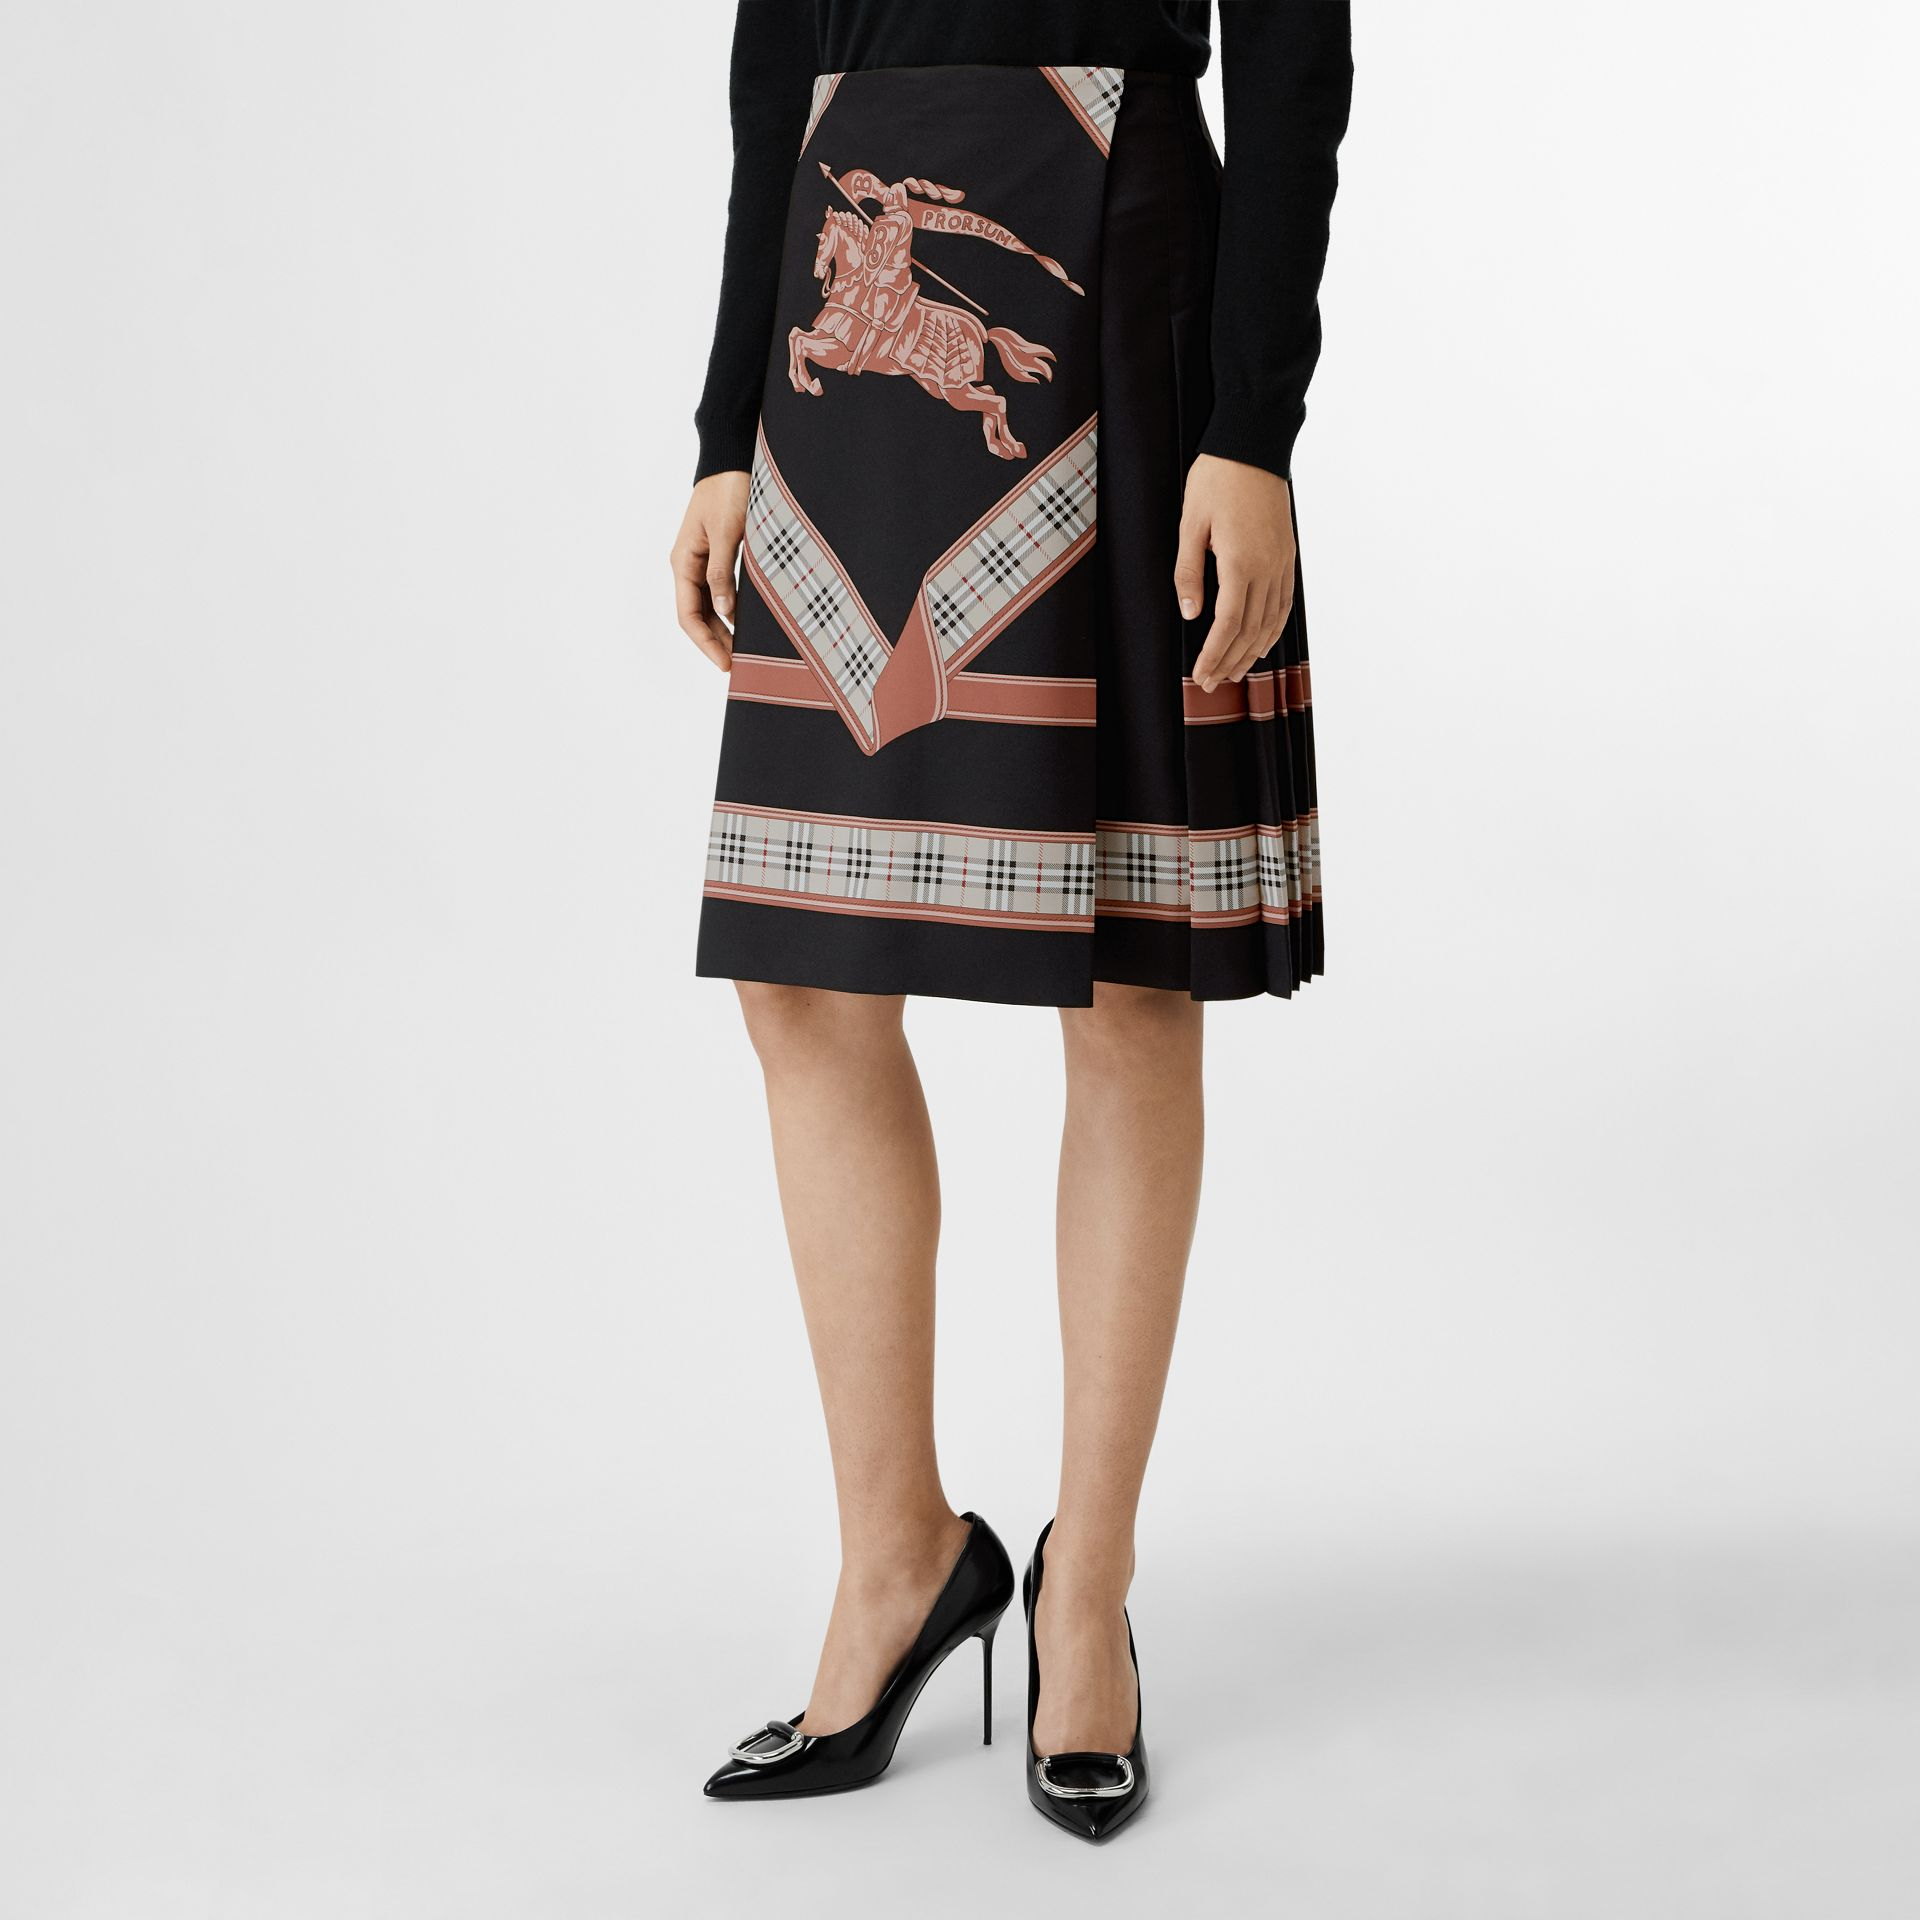 Archive Scarf Print Kilt in Multicolour - Women | Burberry United States - gallery image 4